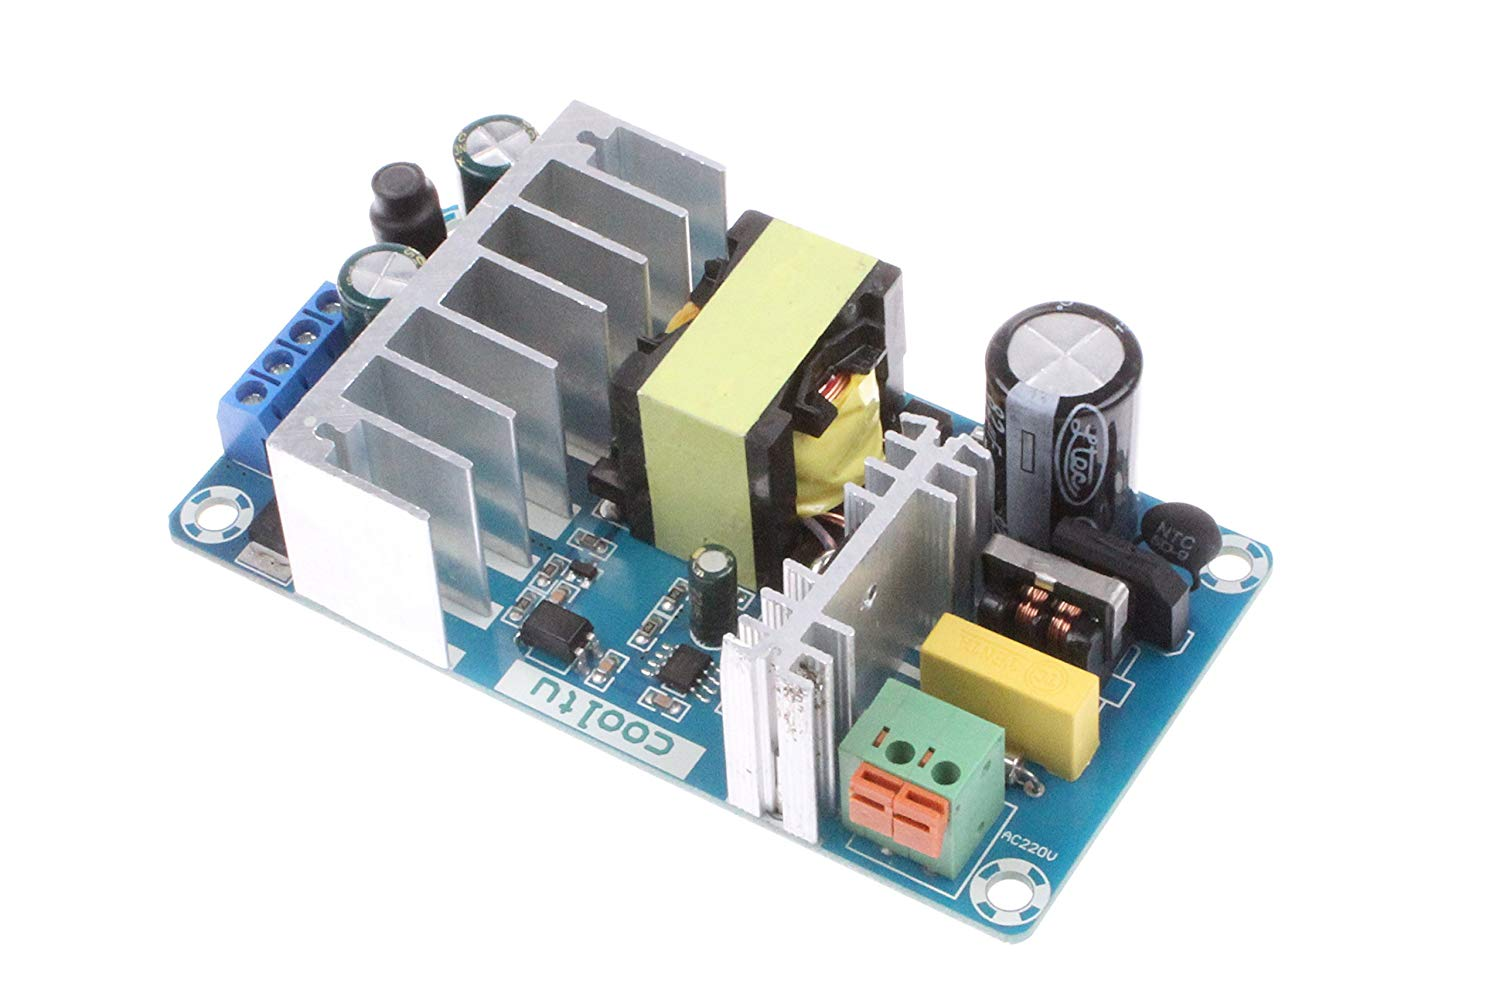 NOYITO AC/DC - DC Power Supply Module DC 24V 4A/12V 1A Dual Output AC 100-260V/DC 140-360V to 24V 12V 100W Industrial Power Module (Dual Output 24V 4A/12V 1A)